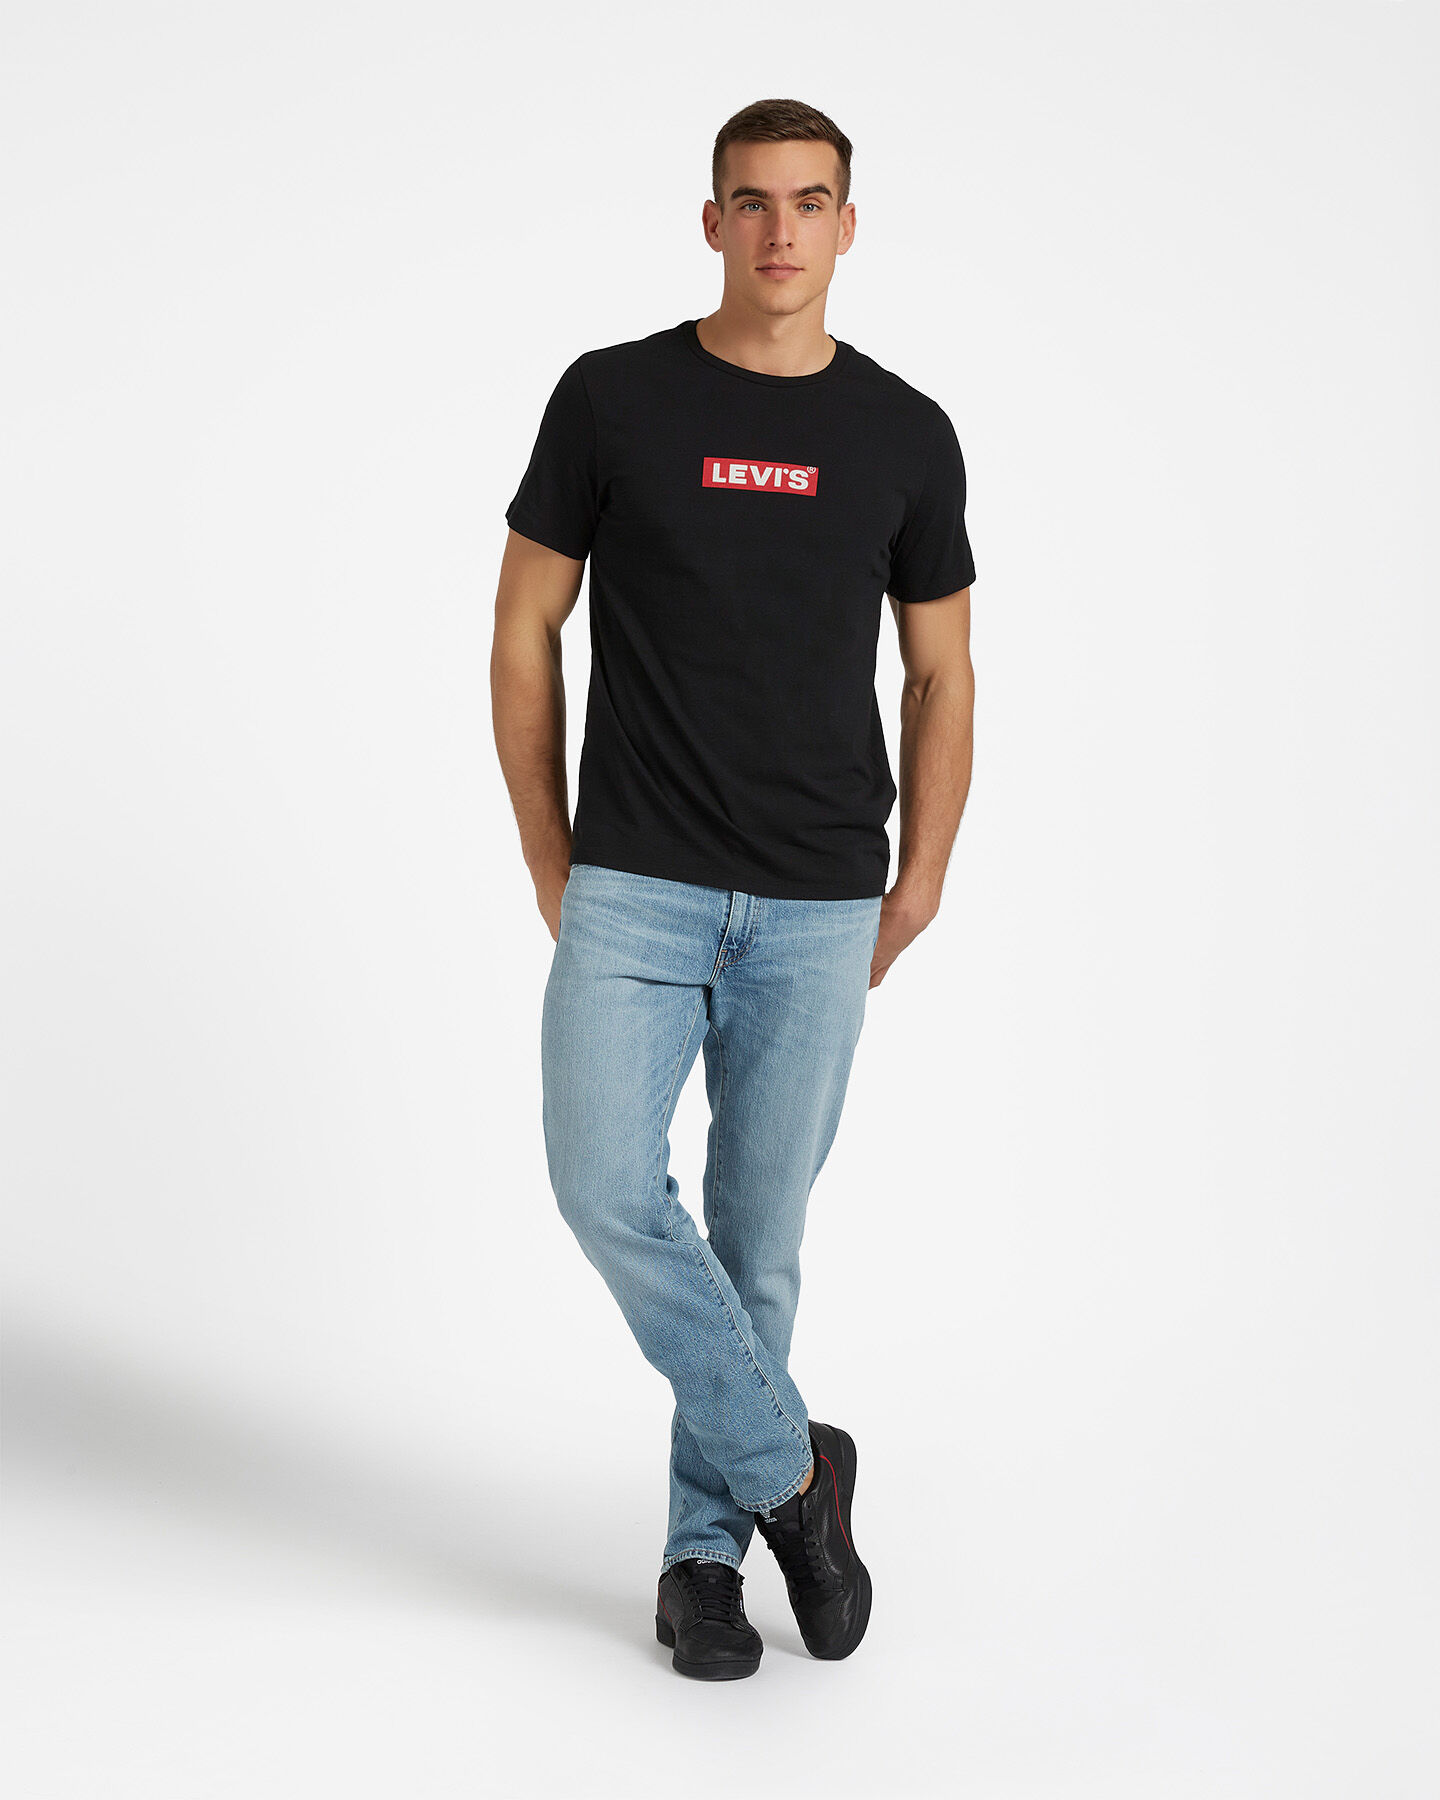 T-Shirt LEVI'S BOXTAB GRAPHIC M S4076920 scatto 1